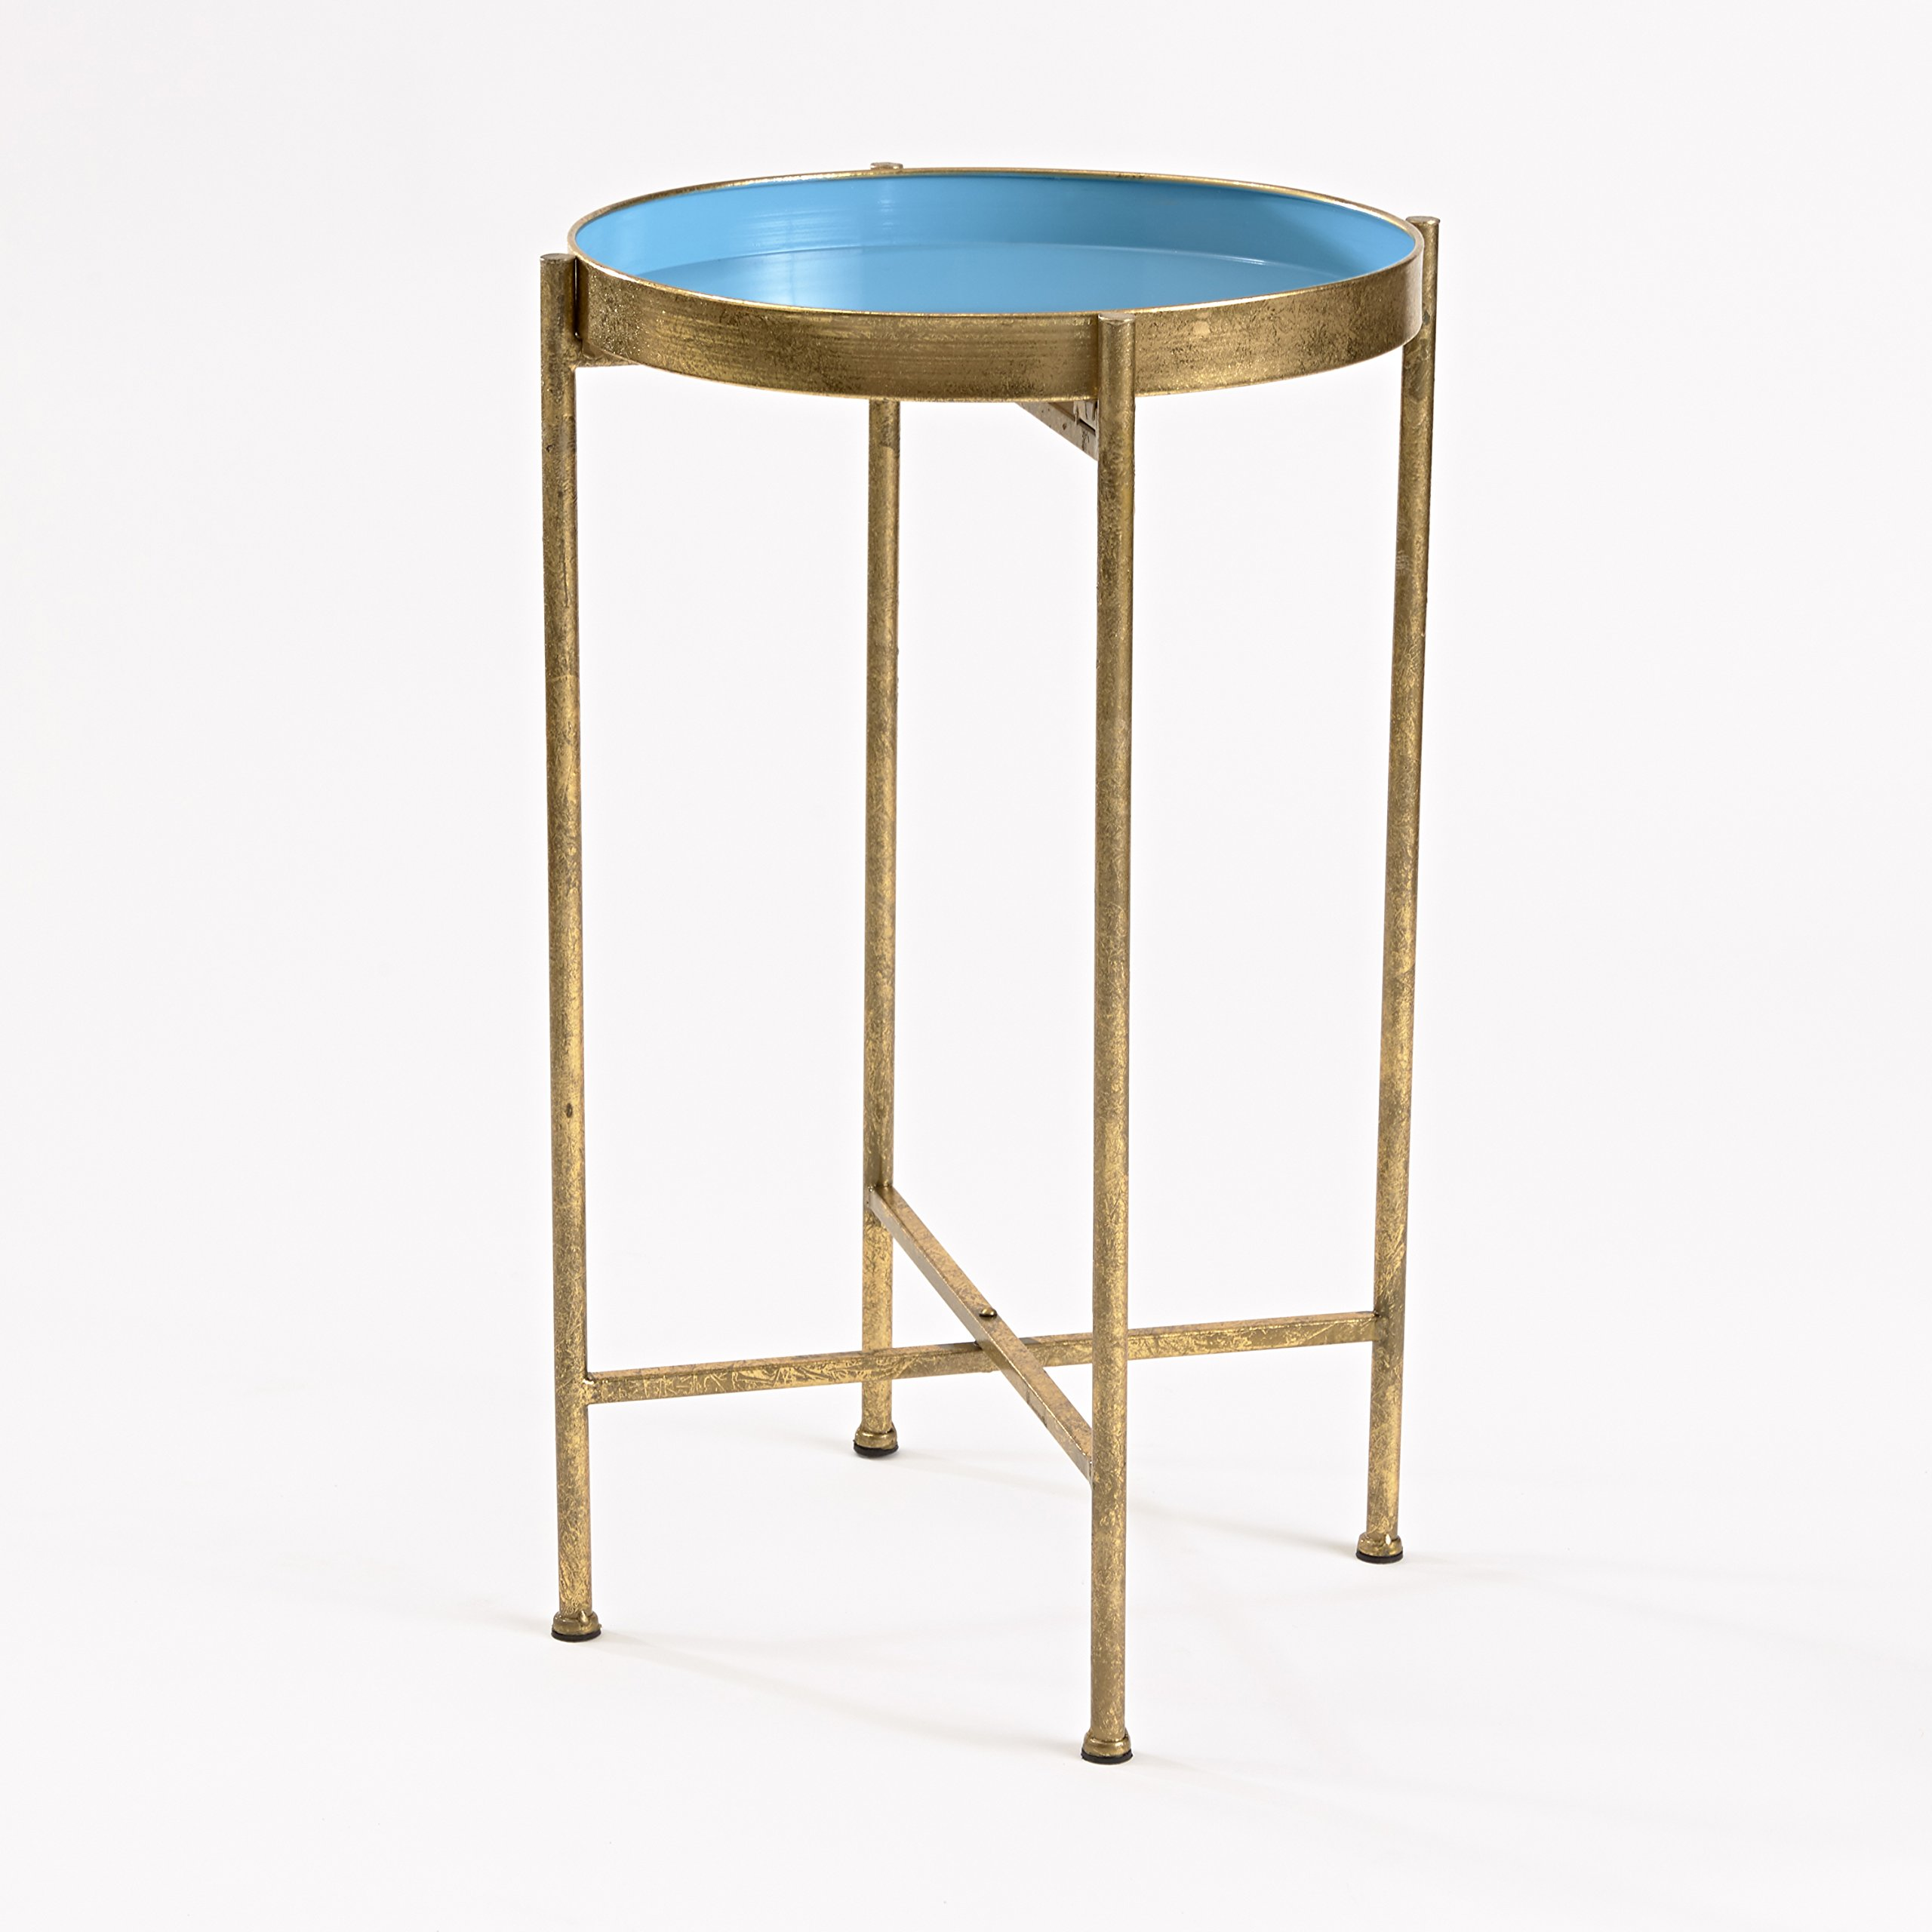 InnerSpace Luxury Products Gild Pop Up Tray Table, Small, Blue